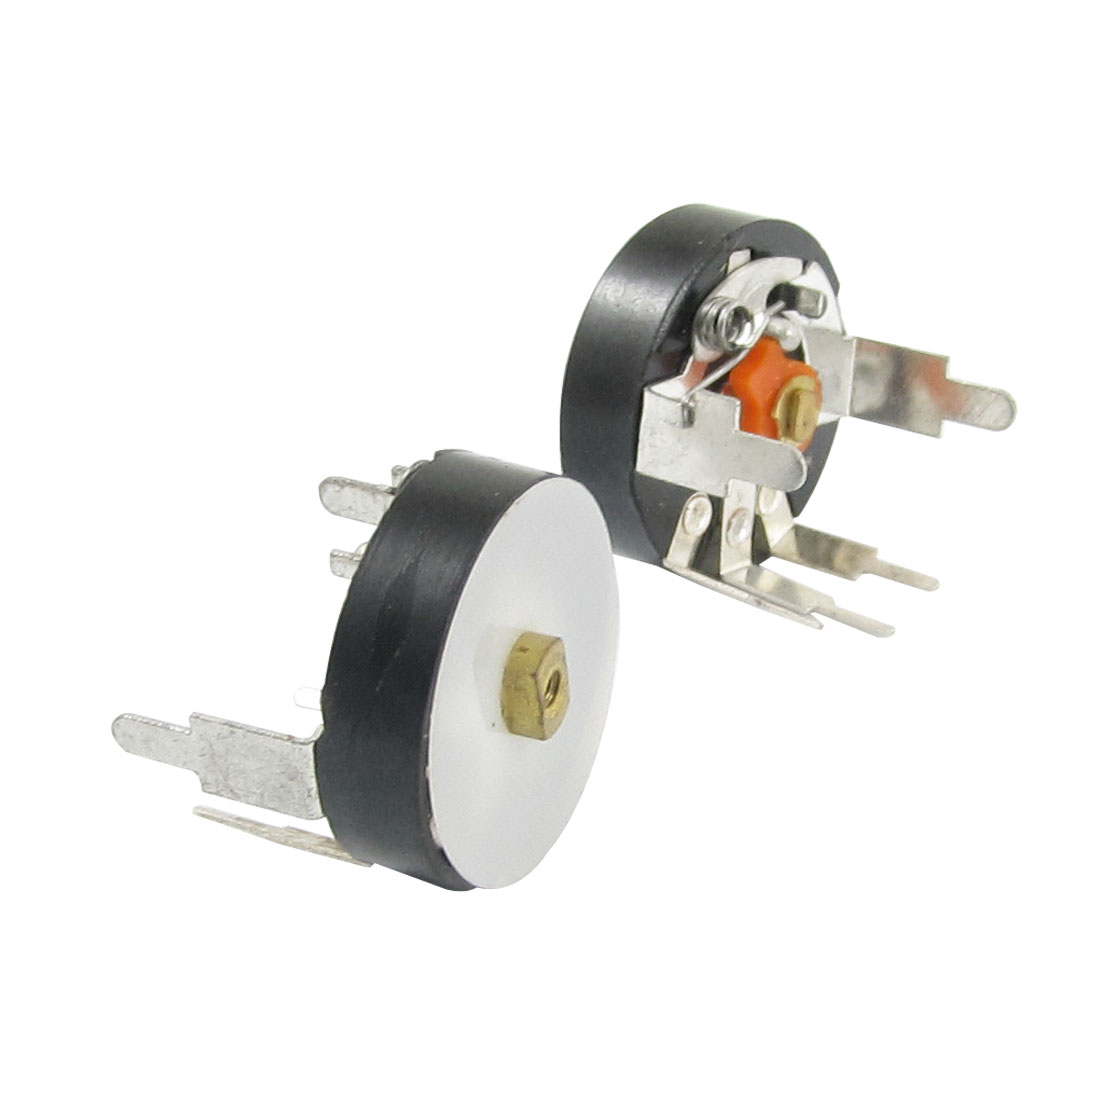 2 Pcs 16mm Diameter 0.1W 50Kohm Carbon Film Potentiometer with Switch